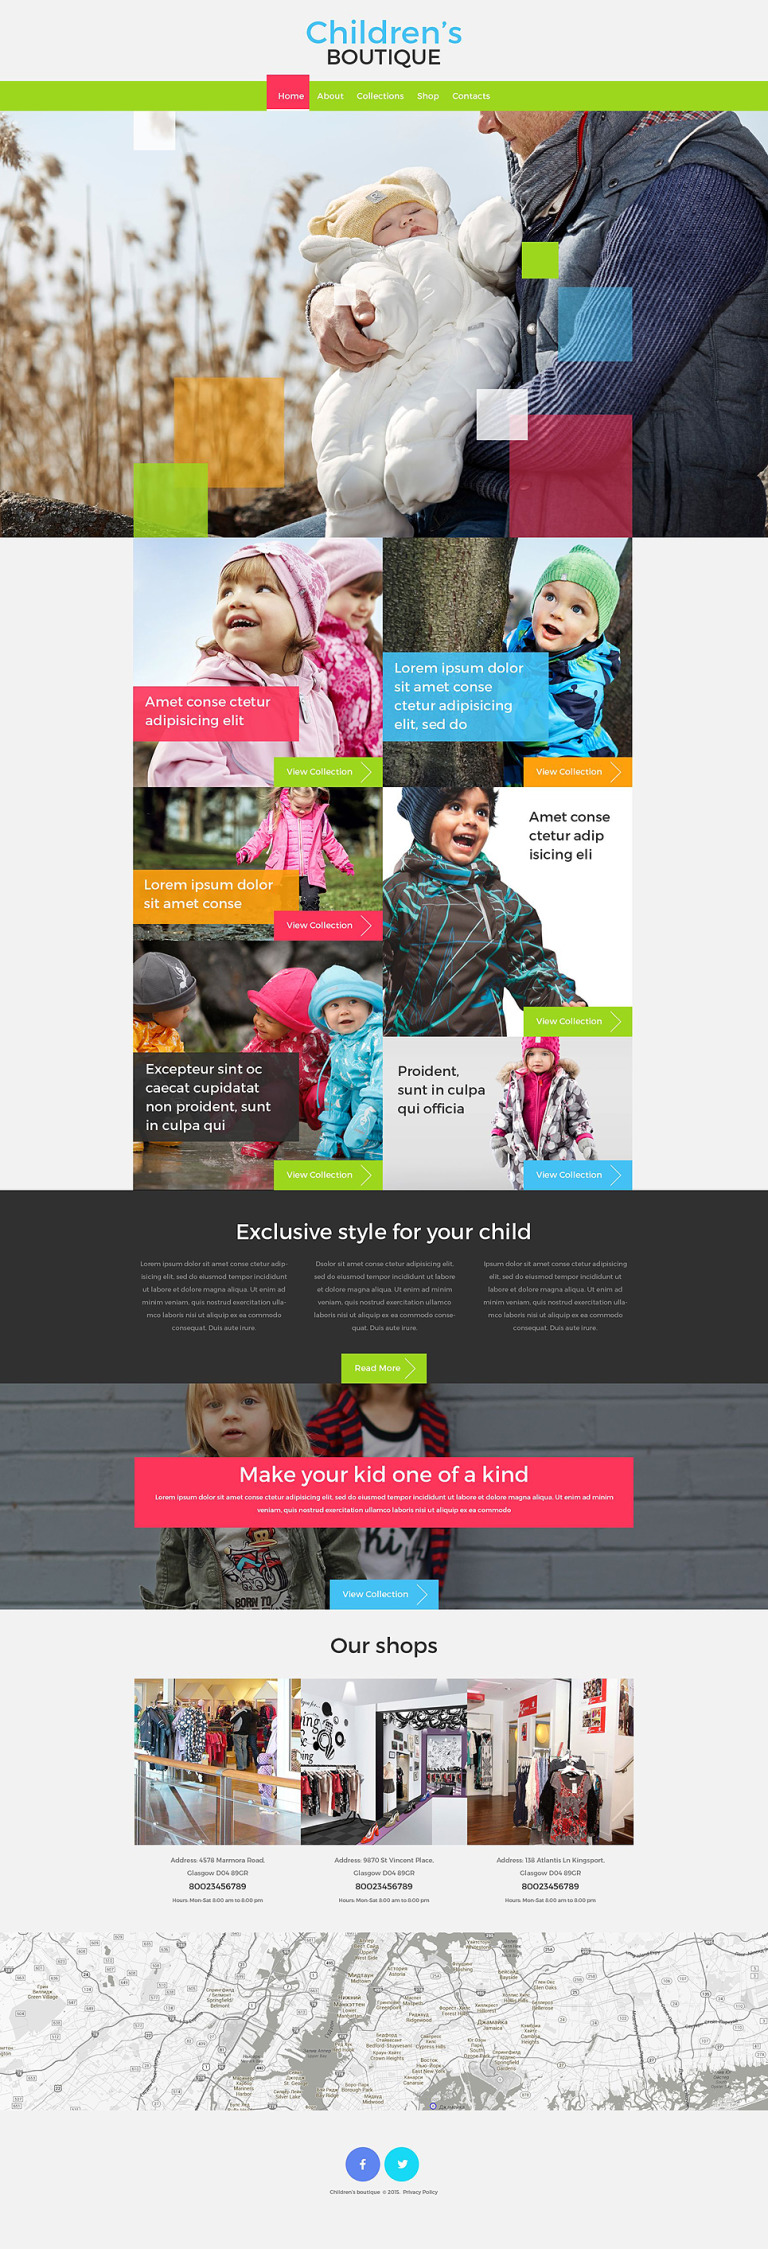 Children's Boutique Website Template New Screenshots BIG